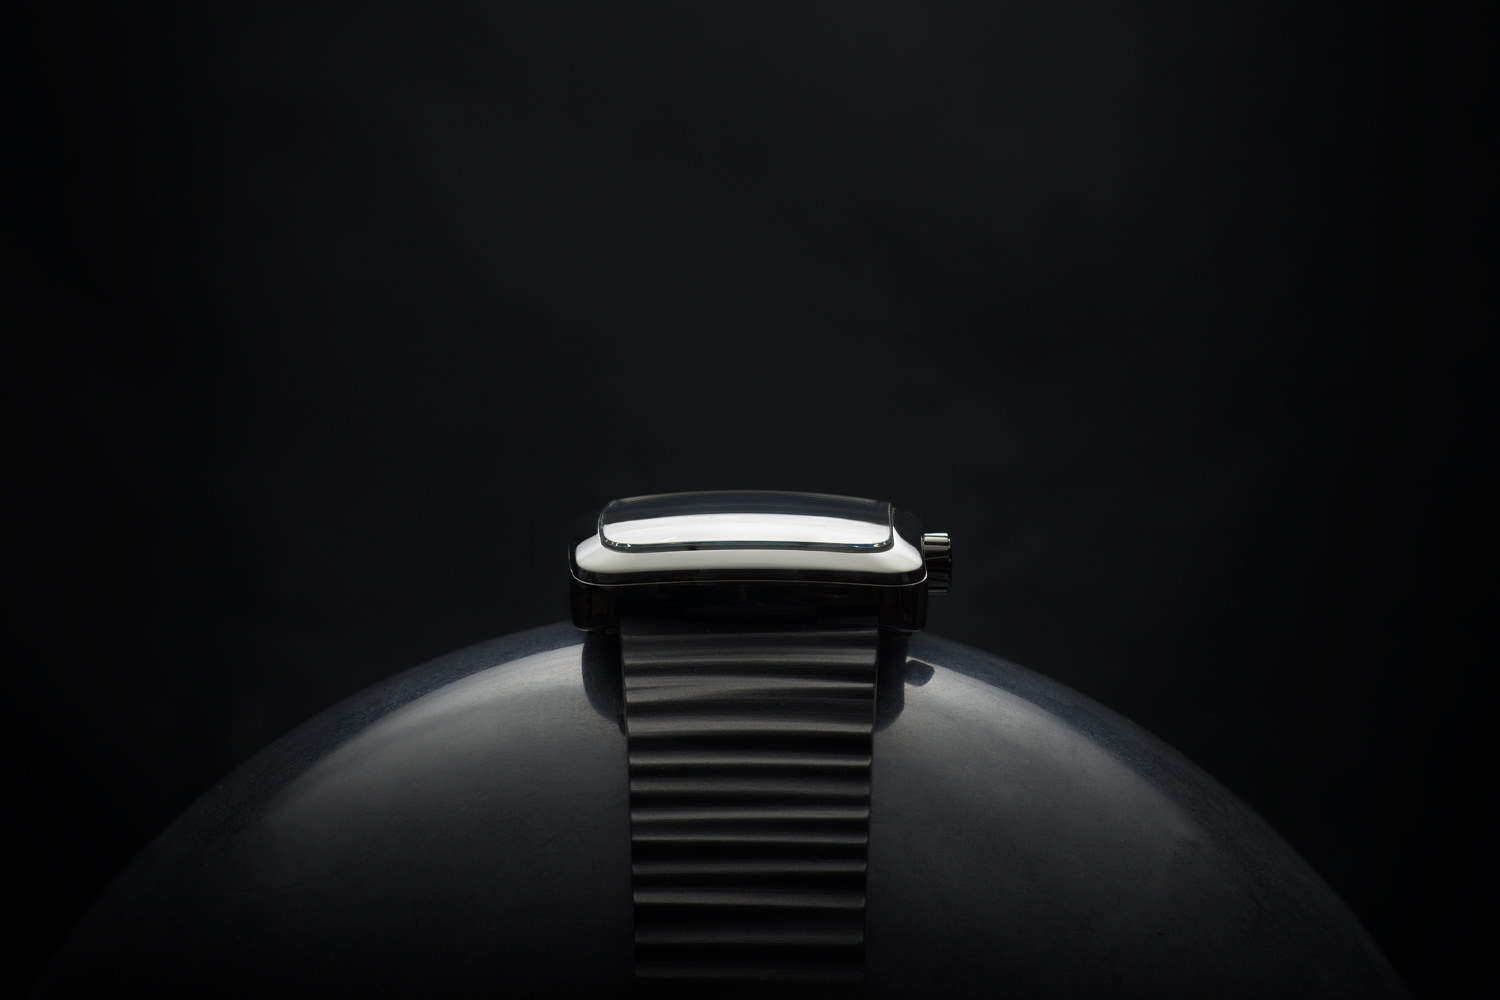 Generative Watches for Kromm designed by Groen&Boothman with 4th industrial revolution technology